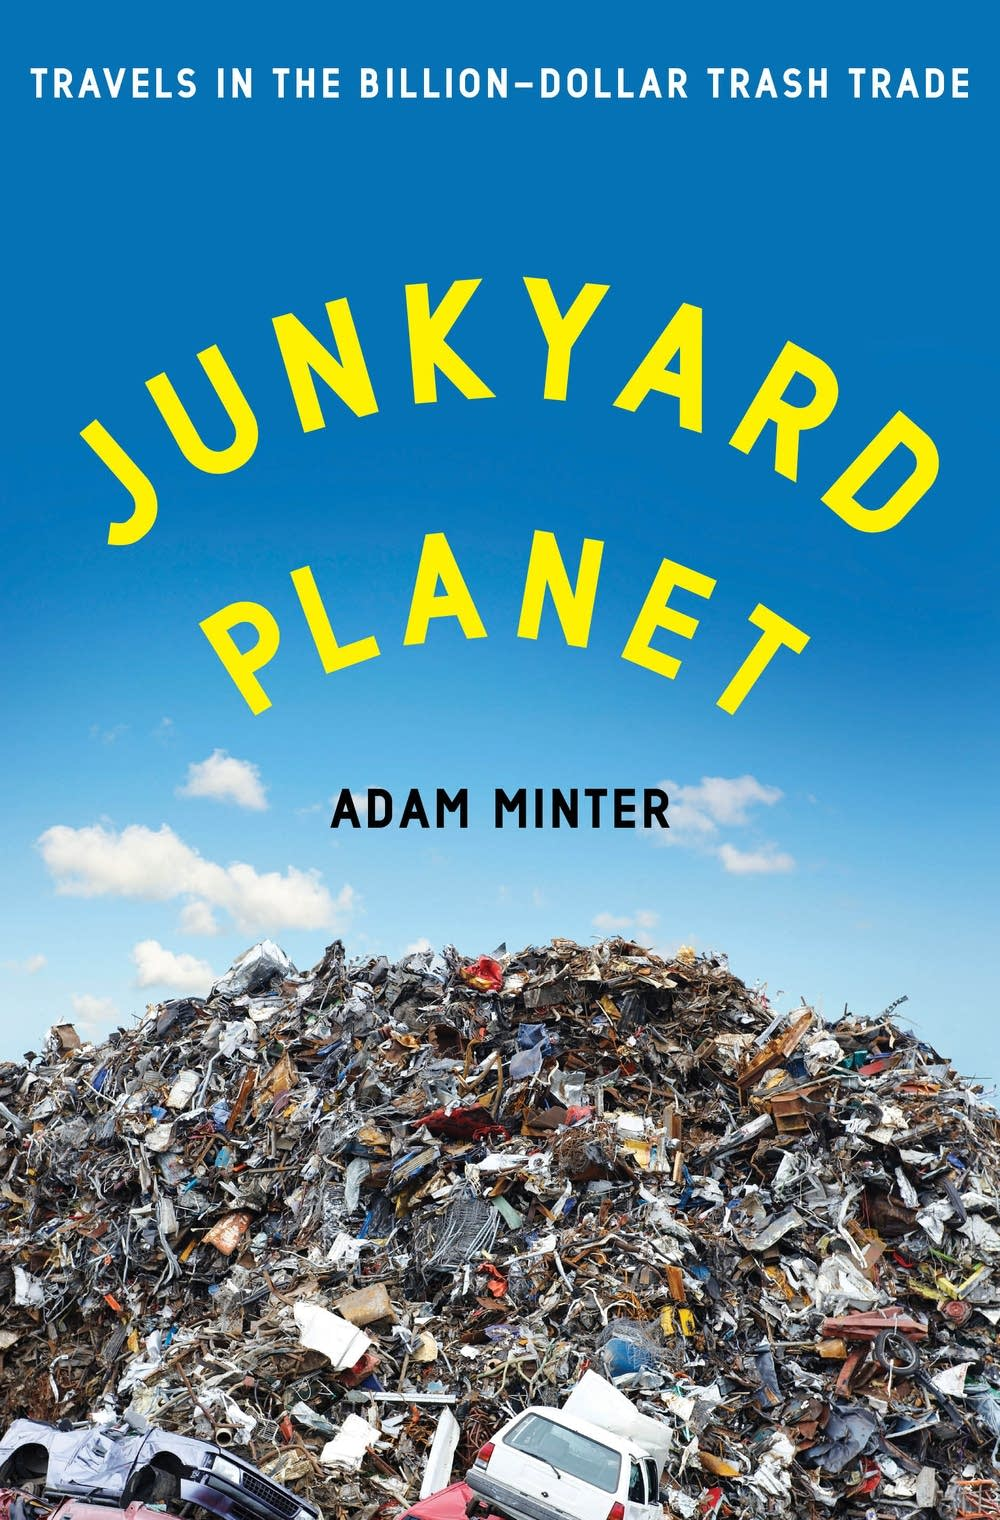 'Junkyard Planet' by Adam Minter